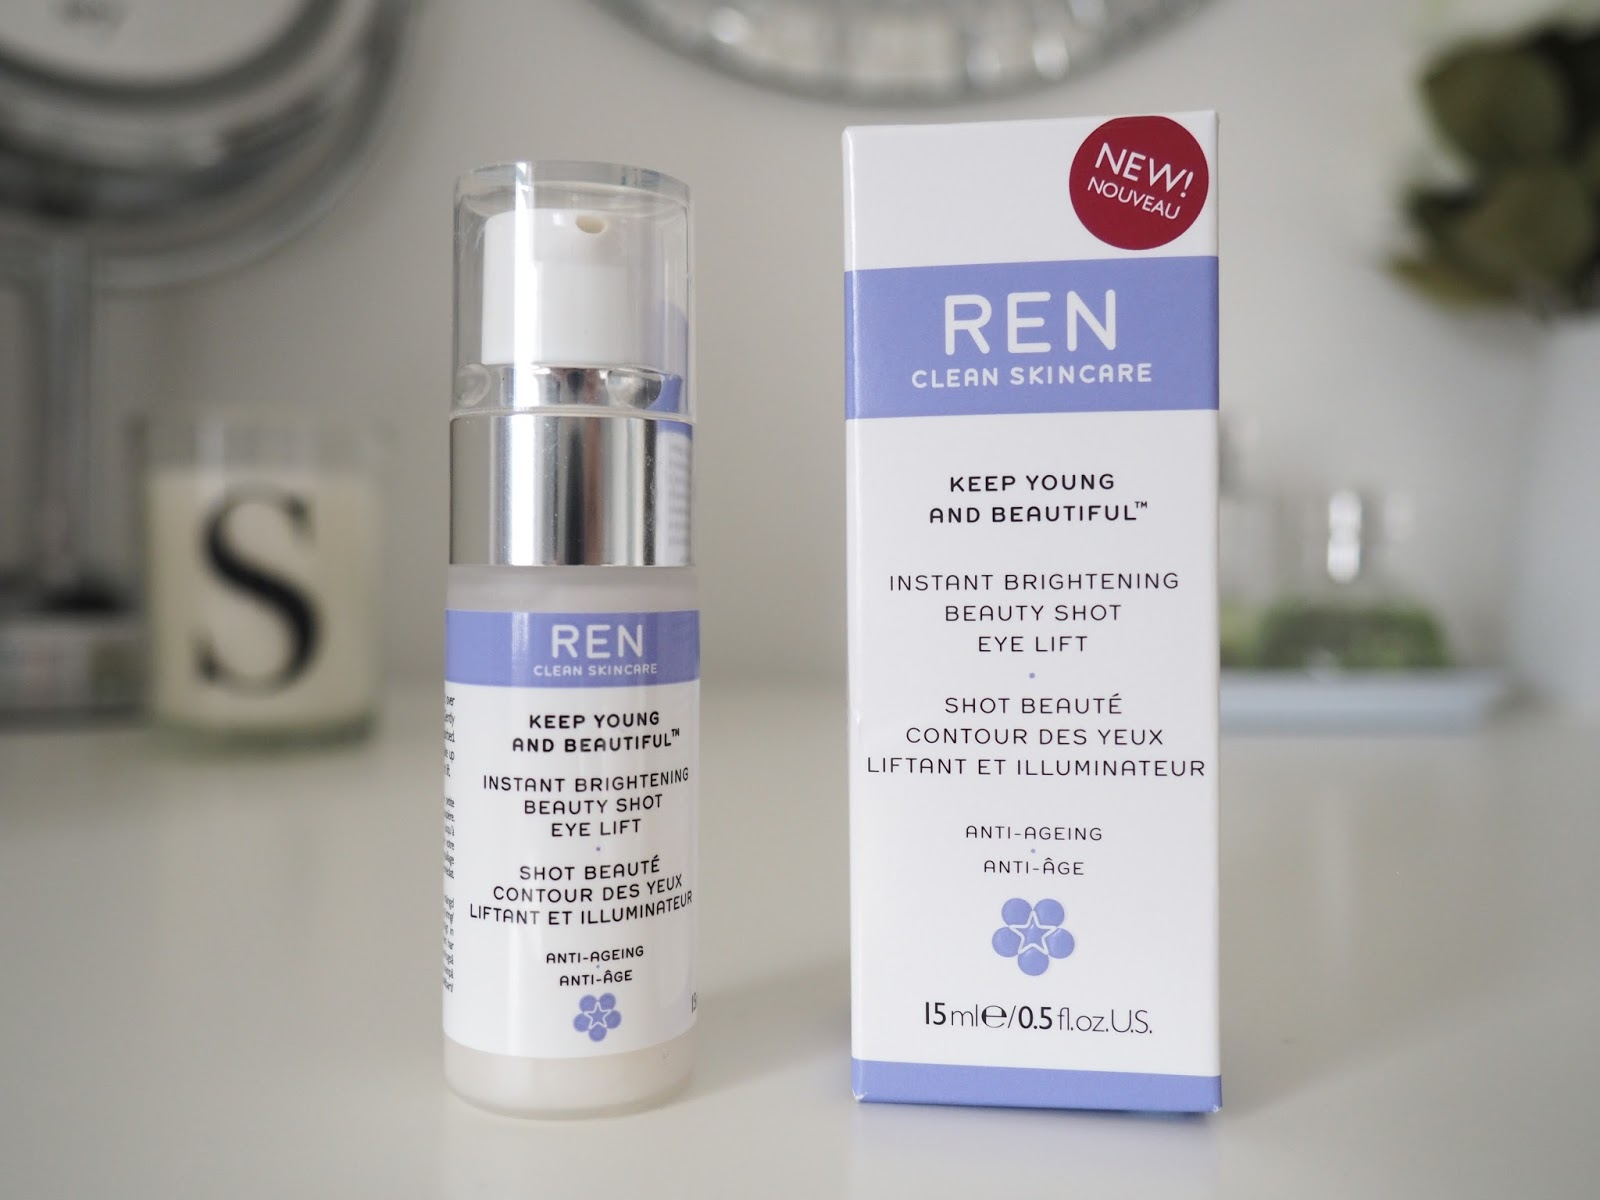 REN instant brightening beauty shot eye lift review skincare